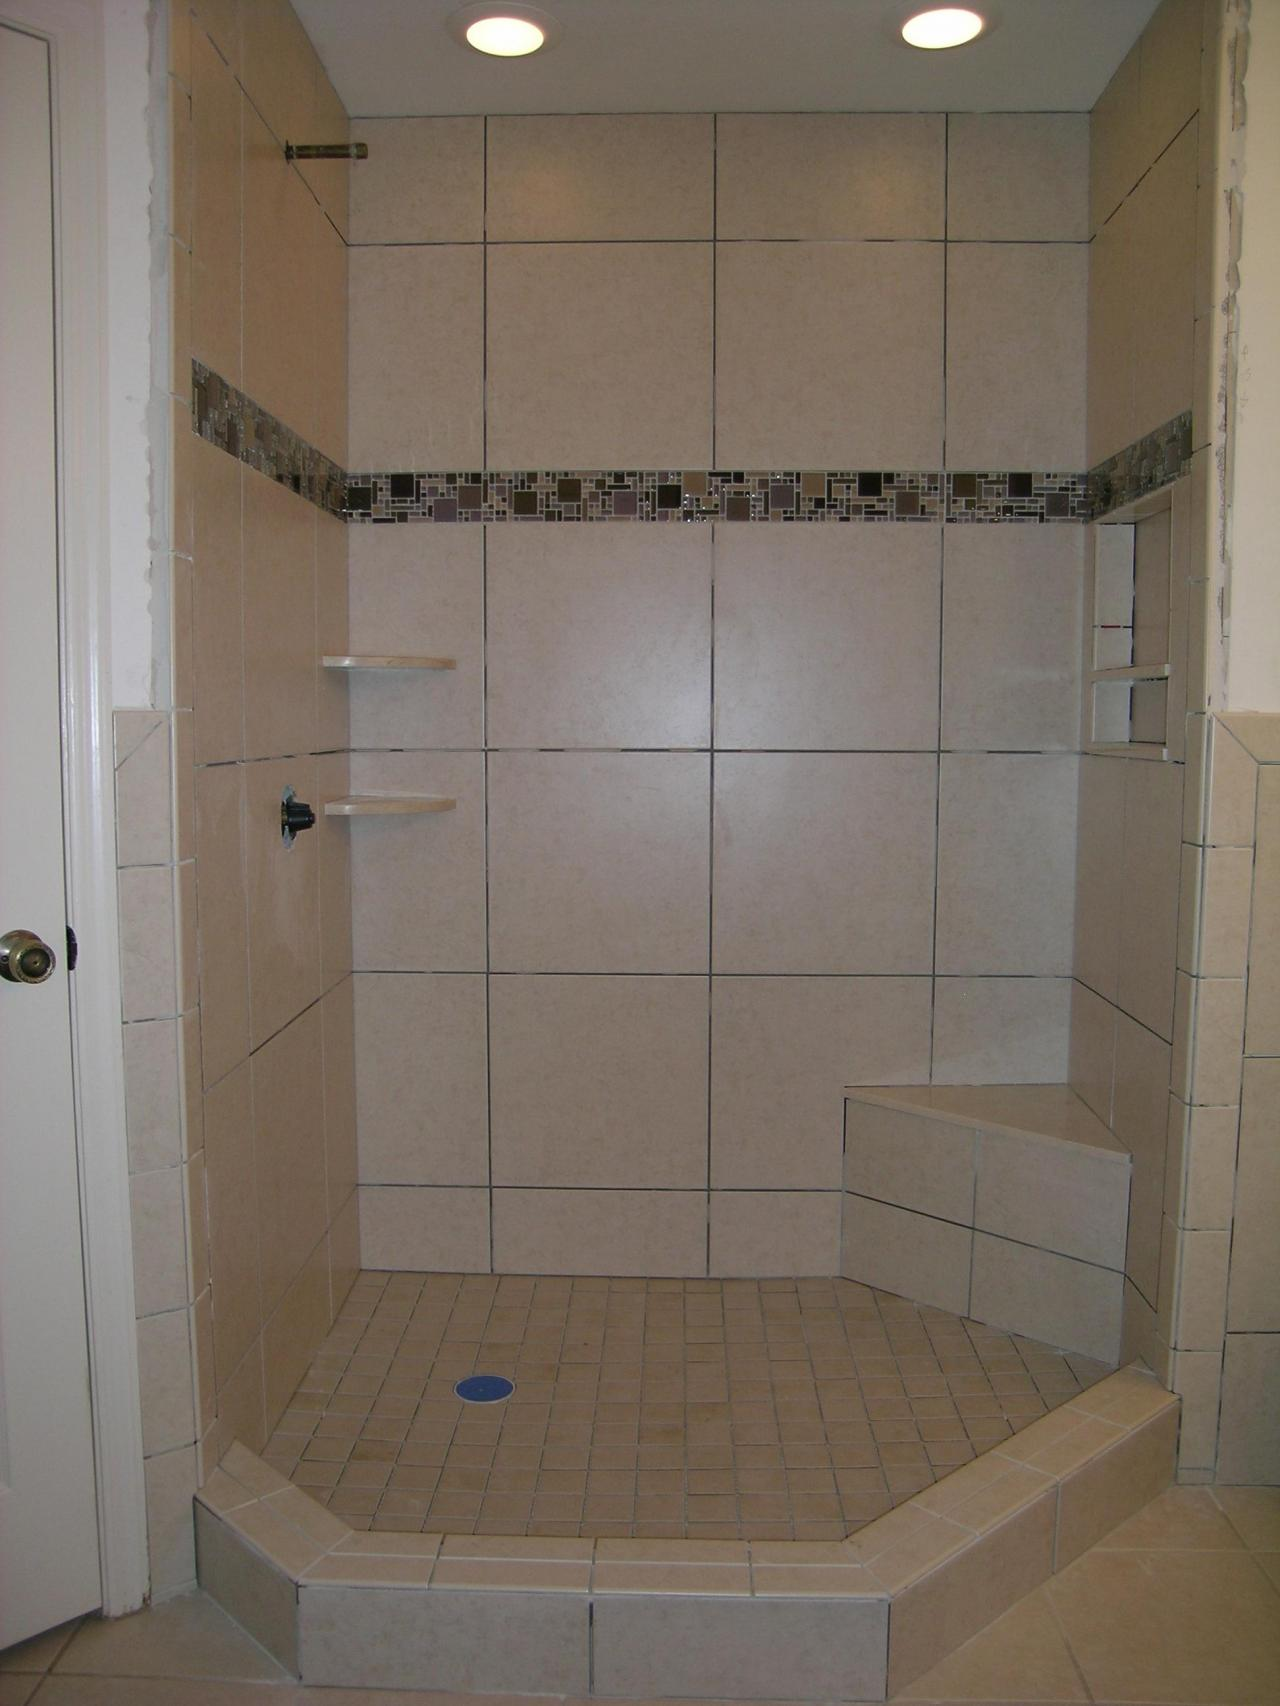 Building Shower Base For Tile Tile Shower Pan How To Build A Mortar Shower Pan 15 Tile Shower